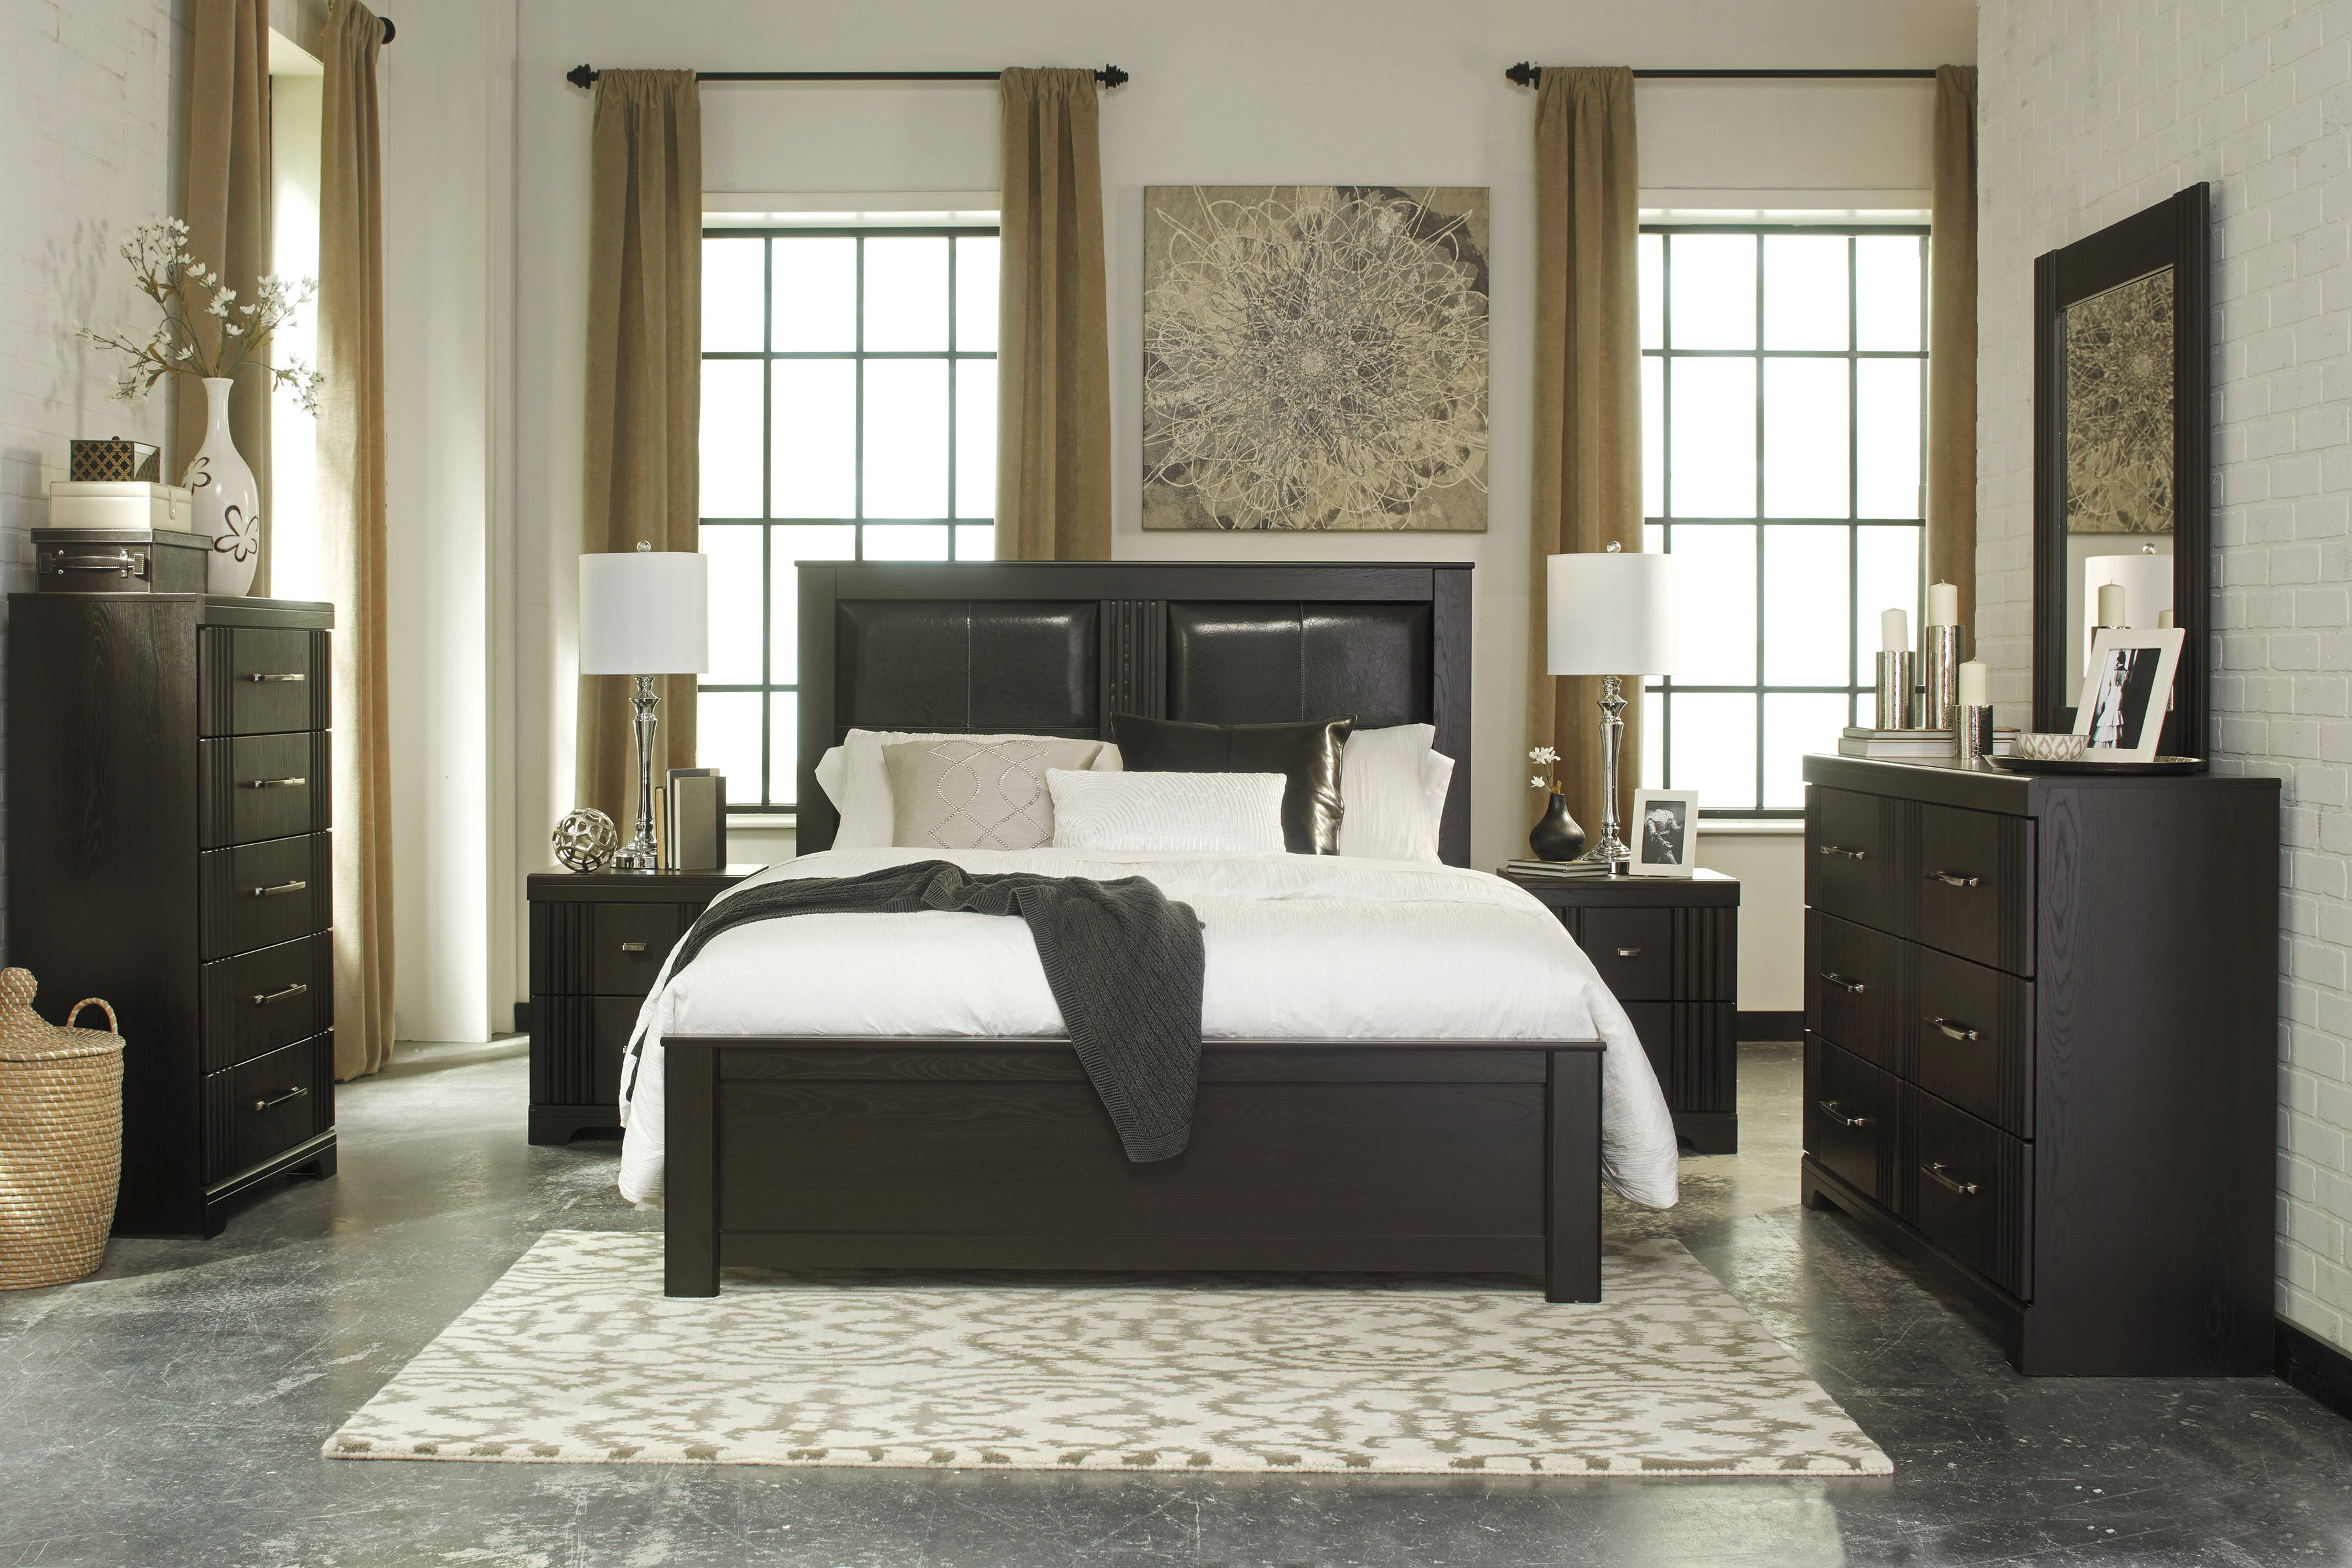 Tadlyn Contemporary Dark Brown Wood Glass Master Bedroom Set The Classy Home The Classy Home